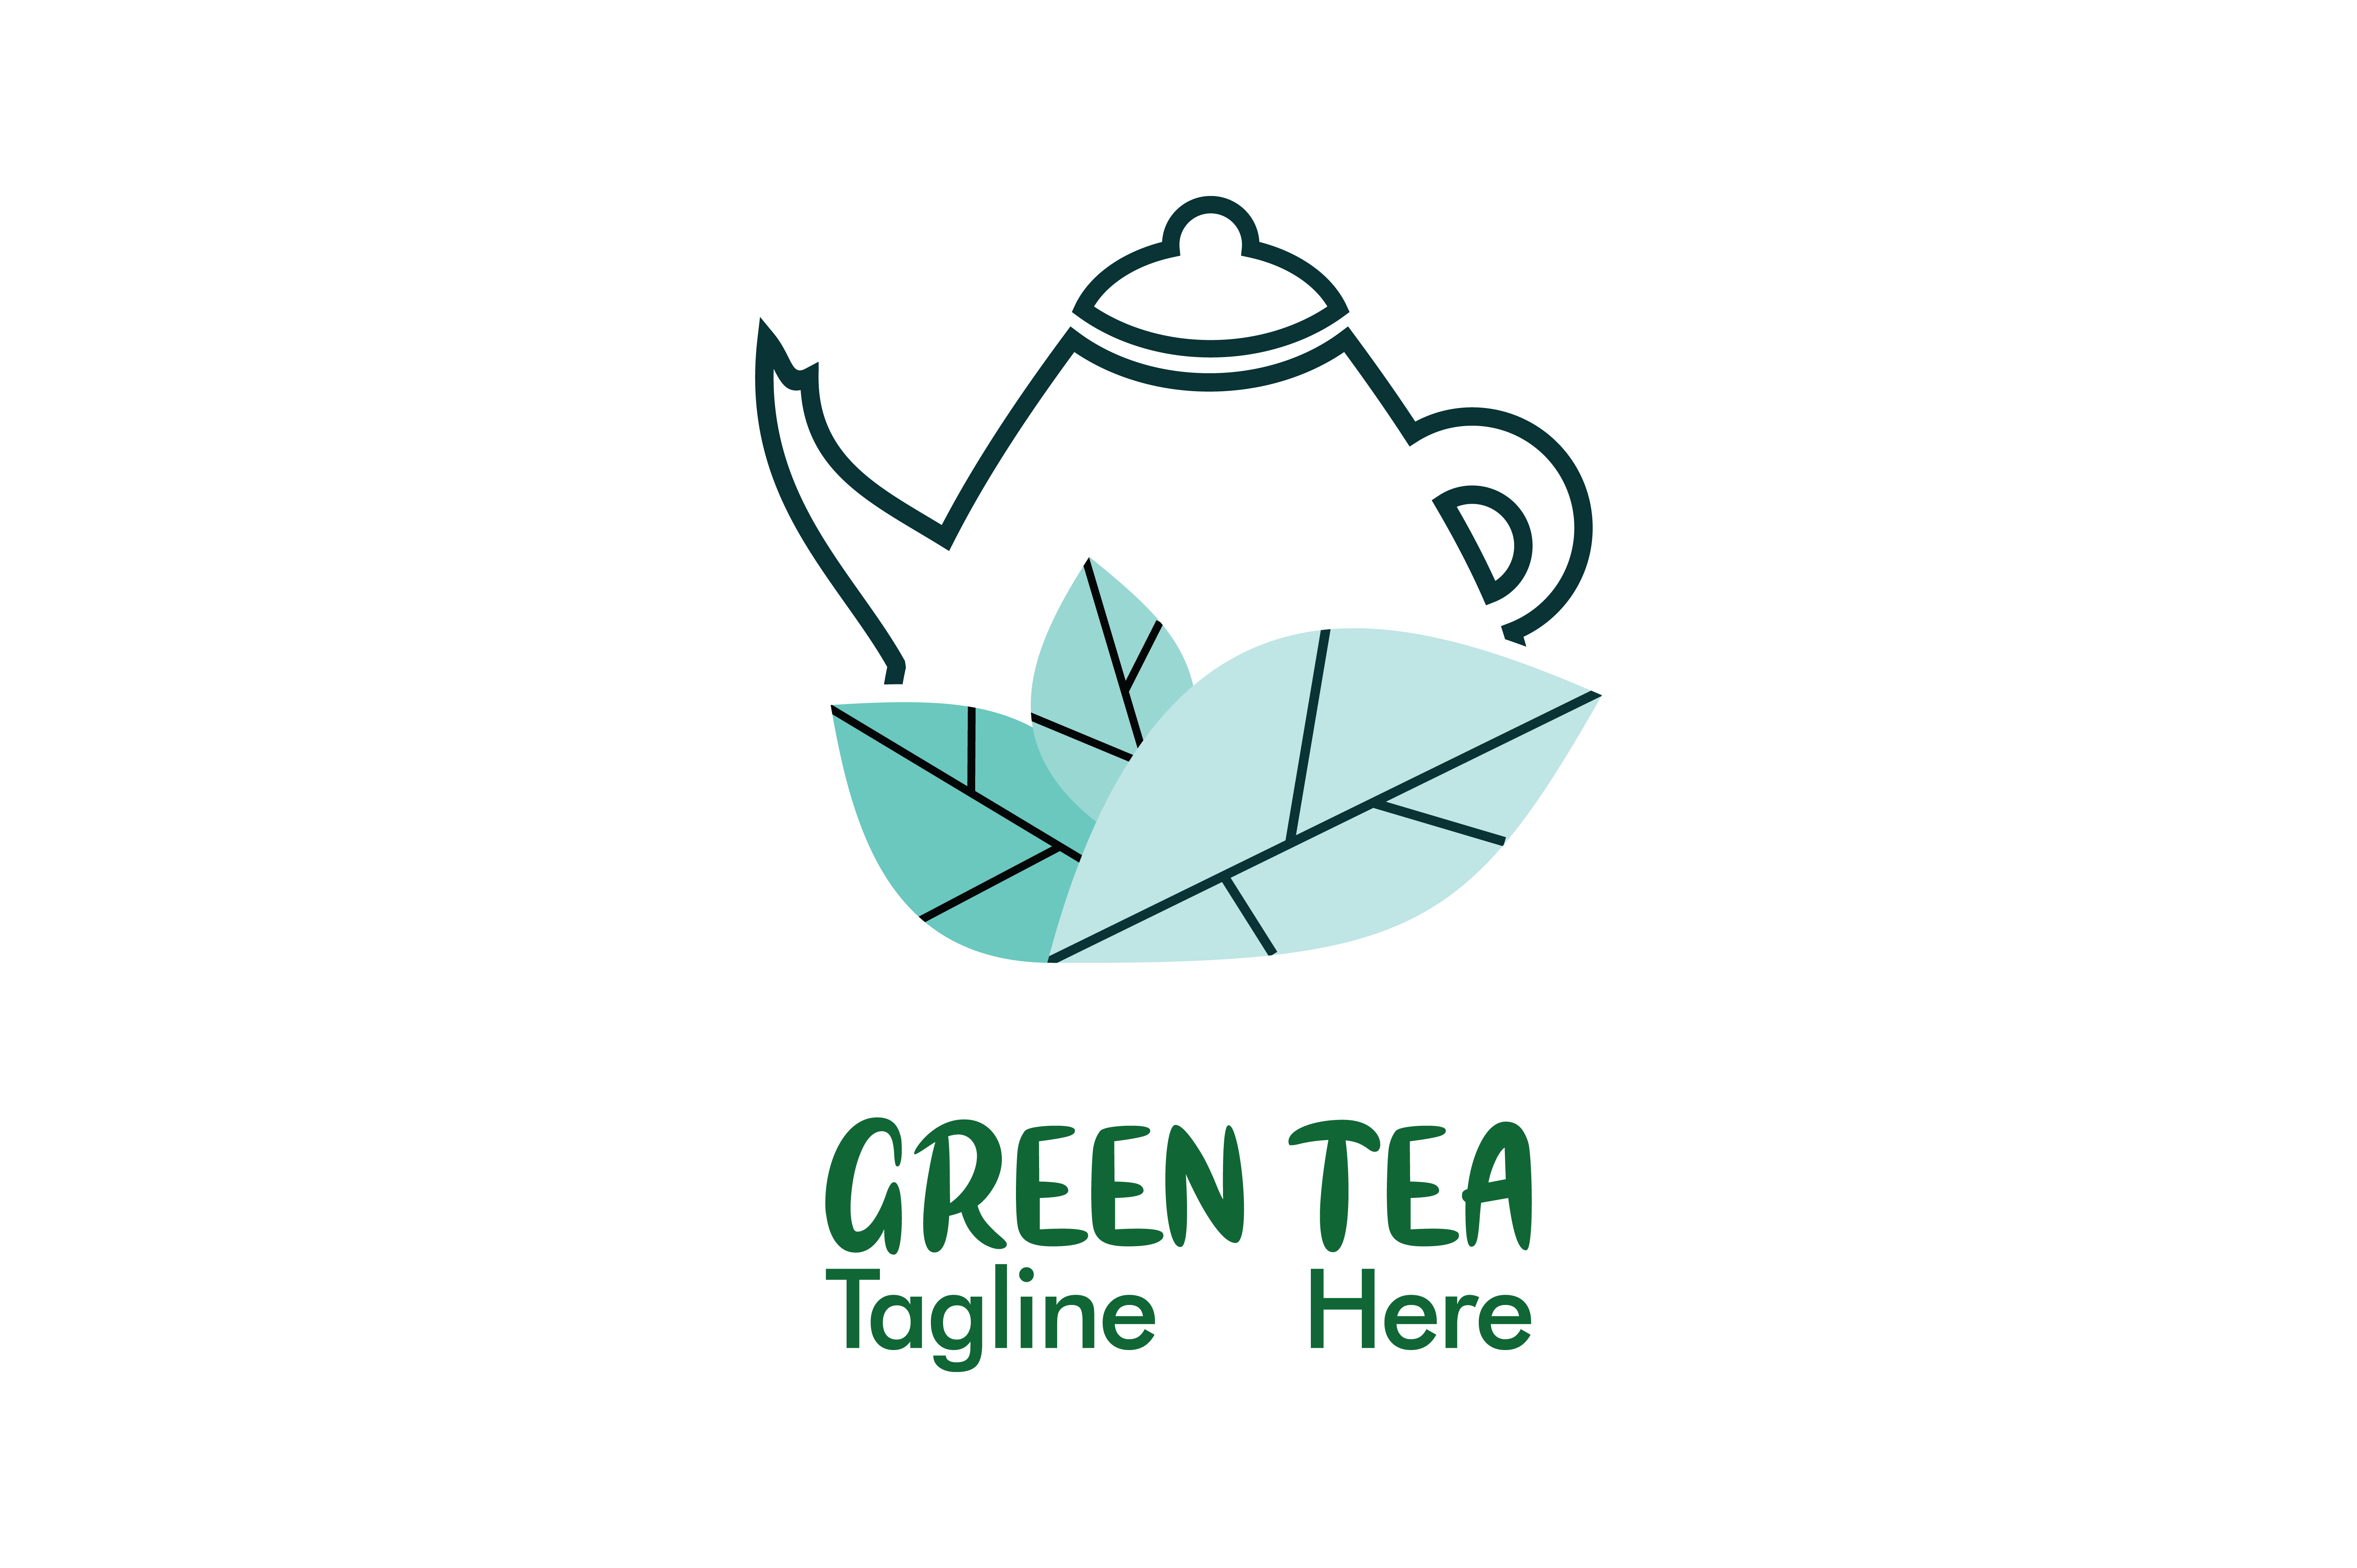 Download Free Green Tea Company Logo Vector Grafico Por Yuhana Purwanti for Cricut Explore, Silhouette and other cutting machines.